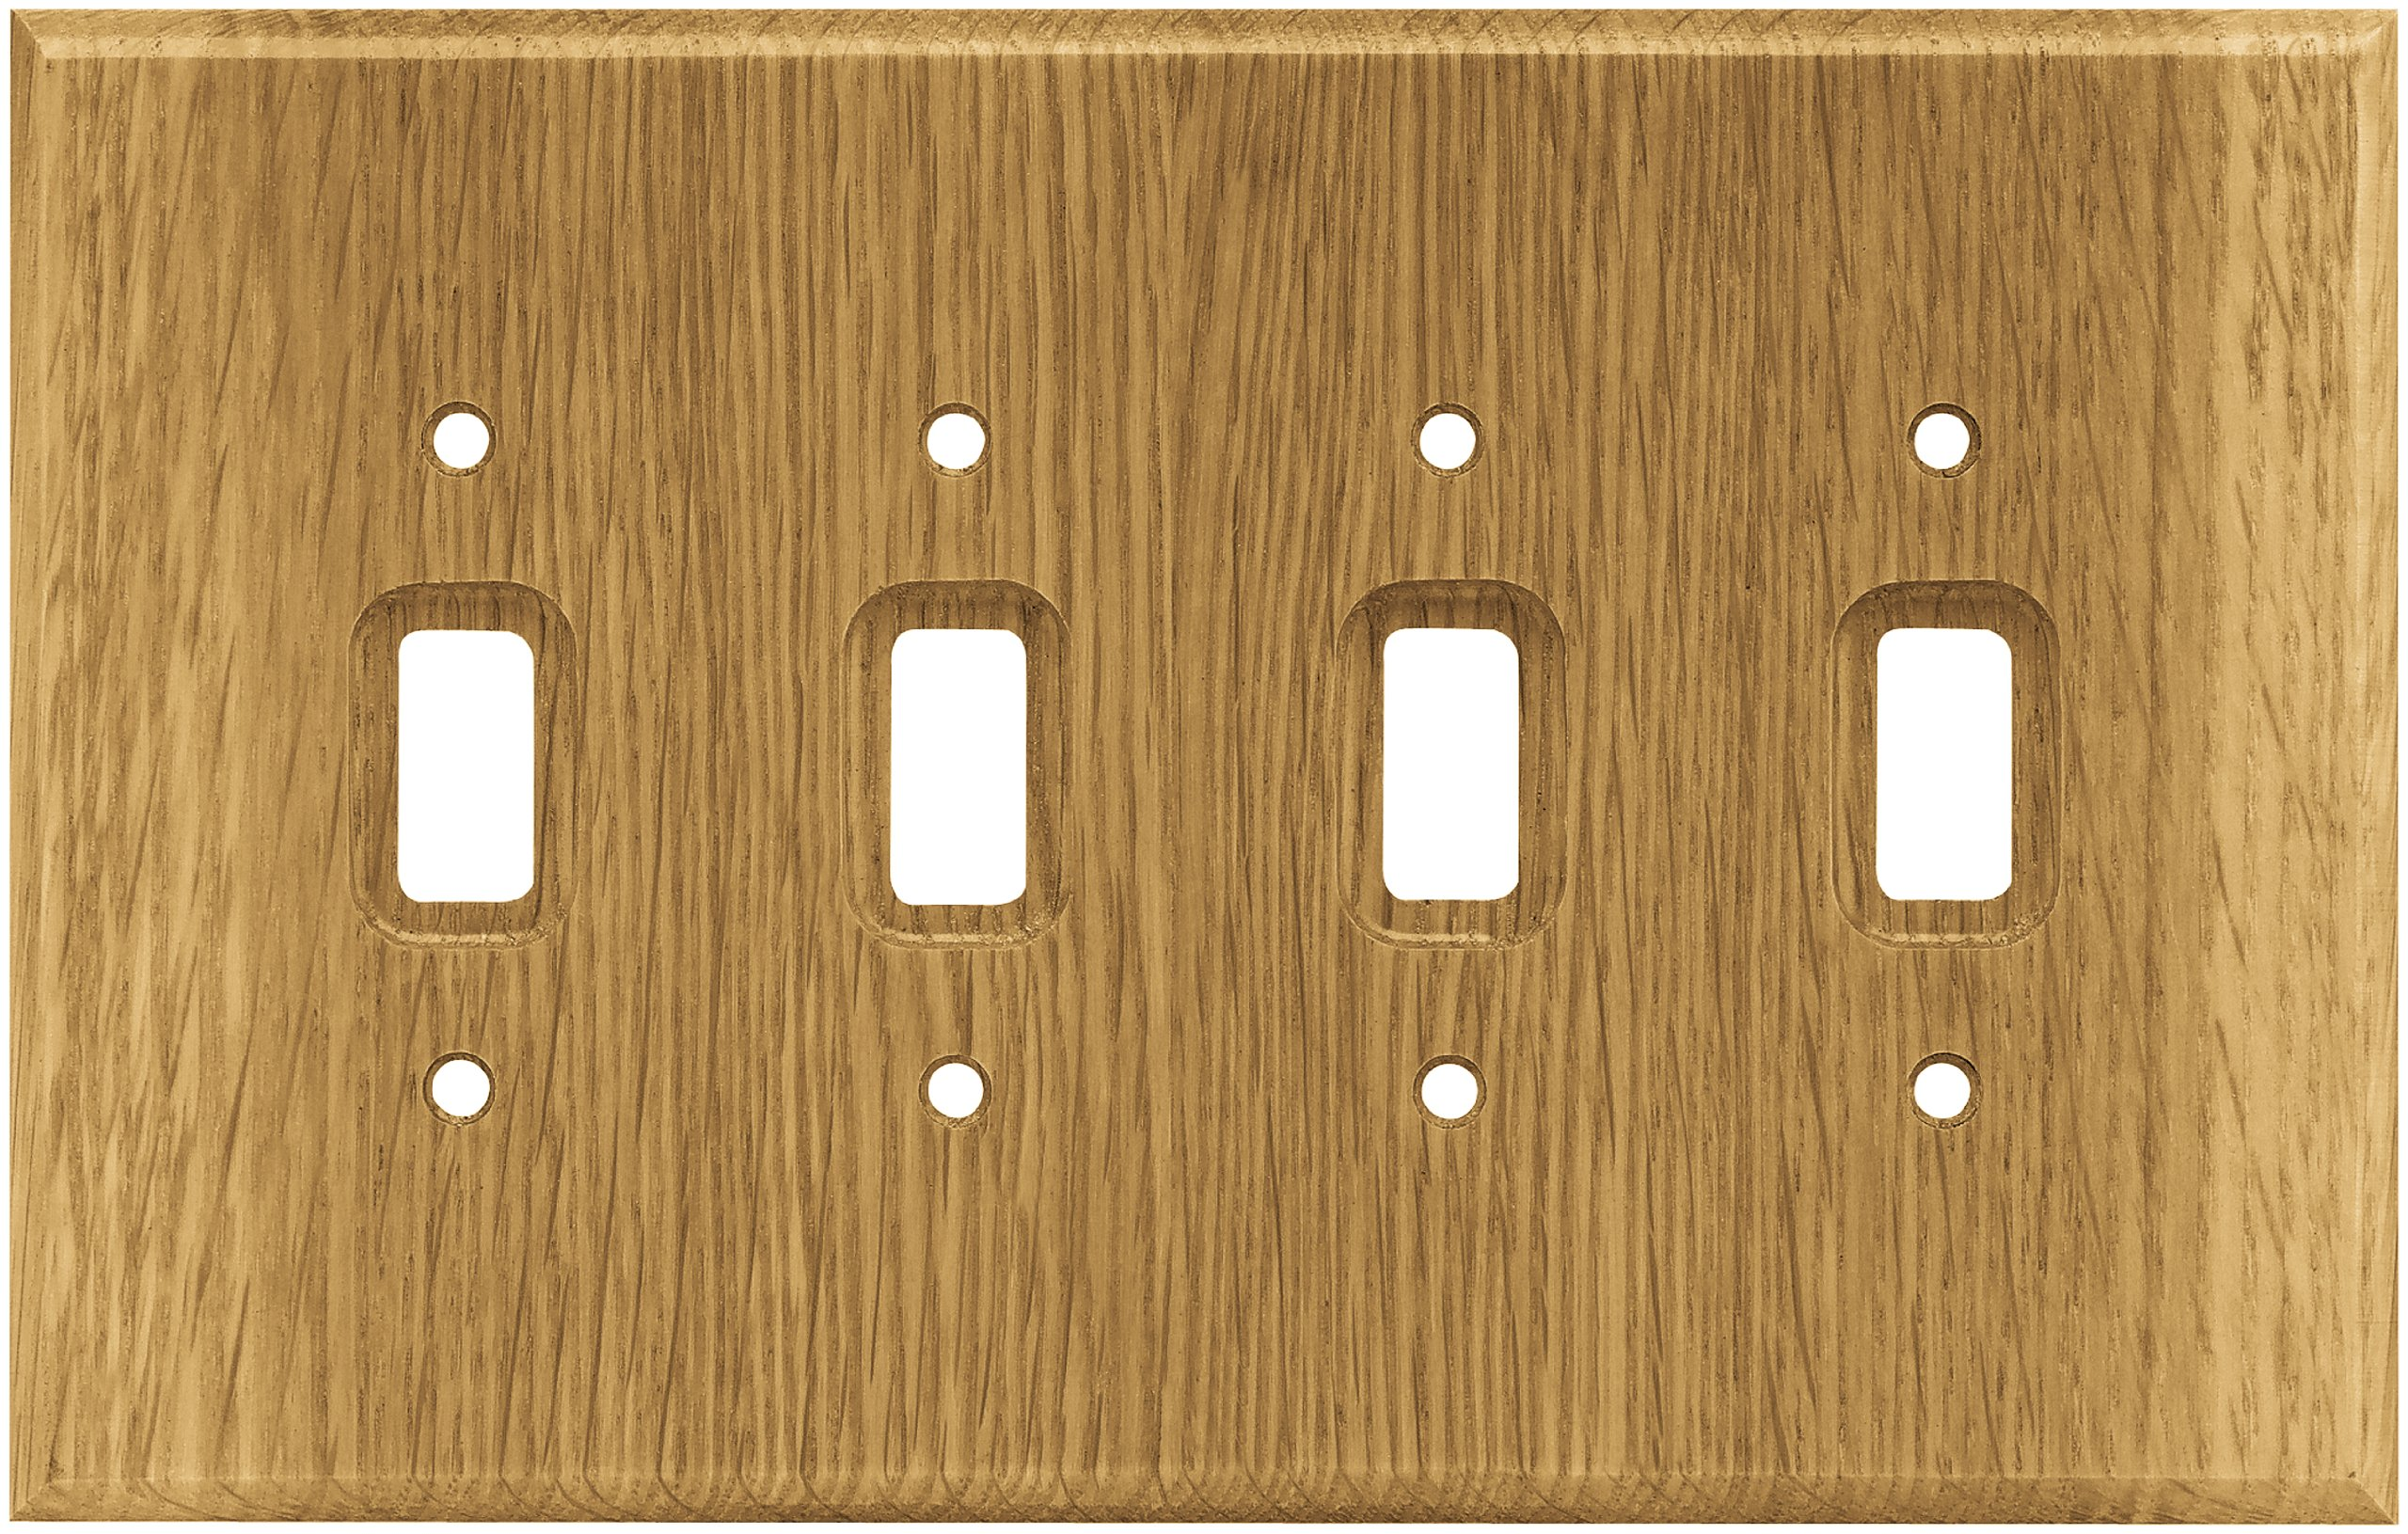 Brainerd 126431 Wood Square Quad Toggle Switch Wall Plate / Switch Plate / Cover, Medium Oak